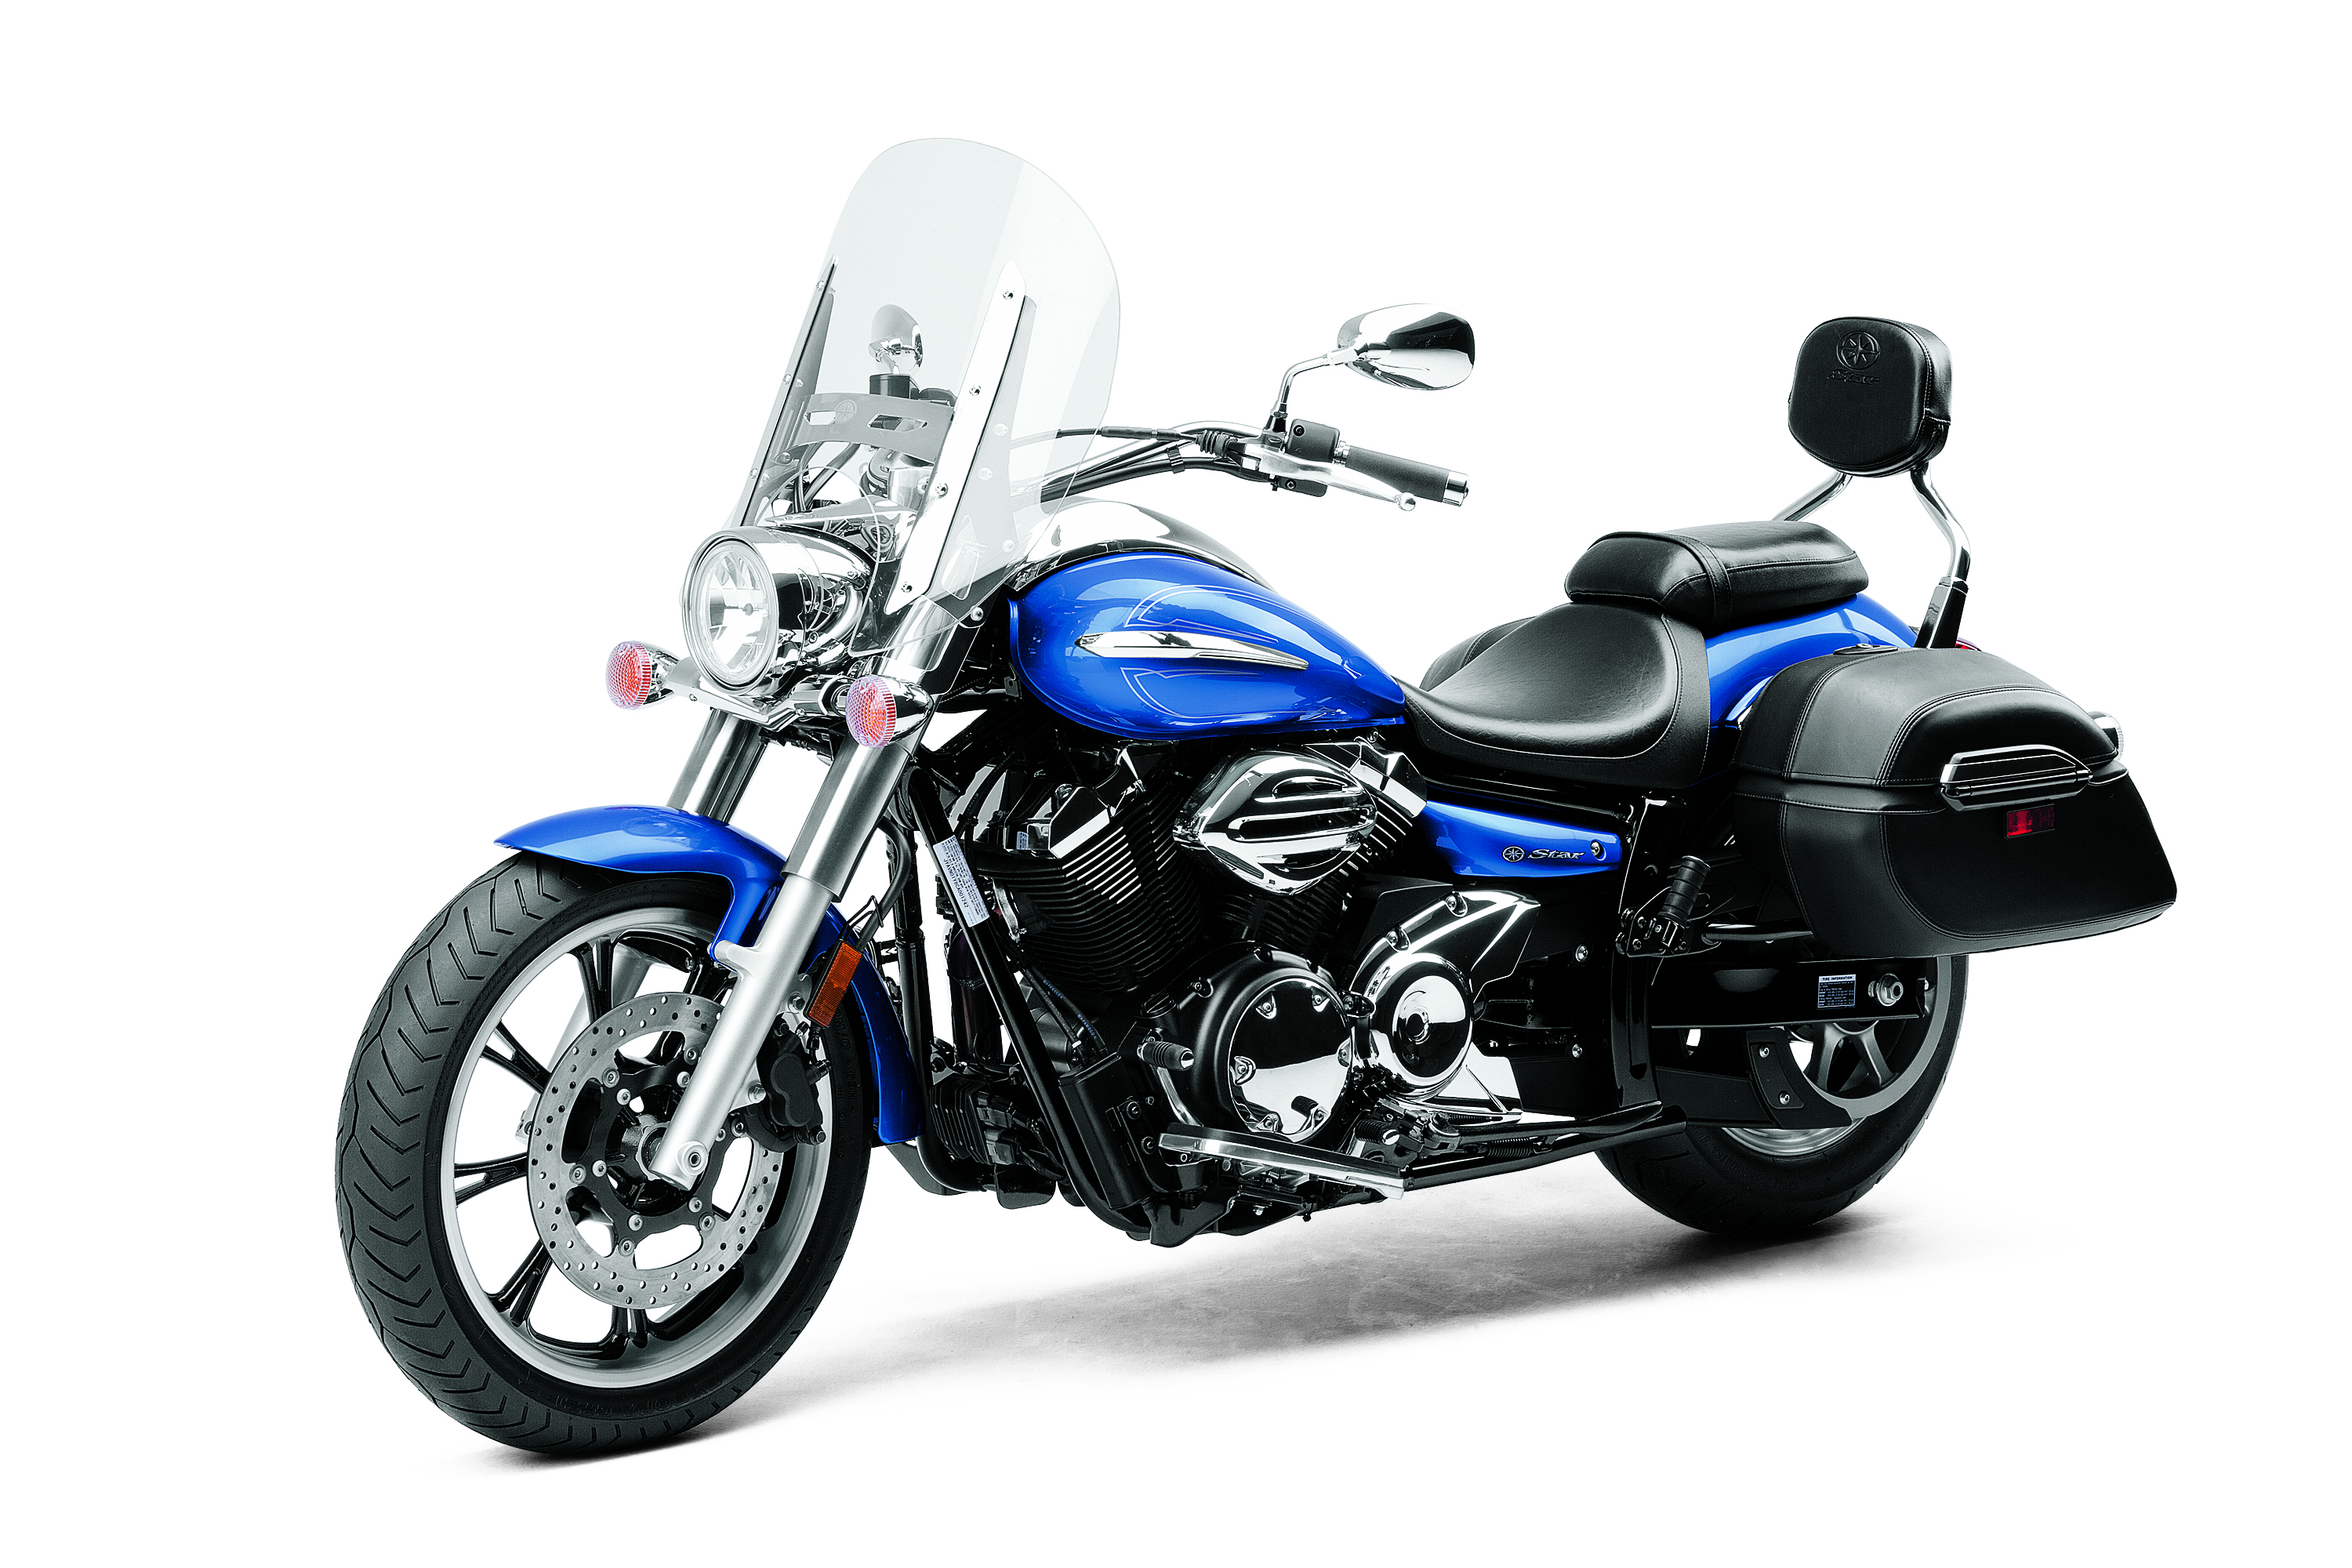 060811-2012-yamaha-v-star-950-tourer-08